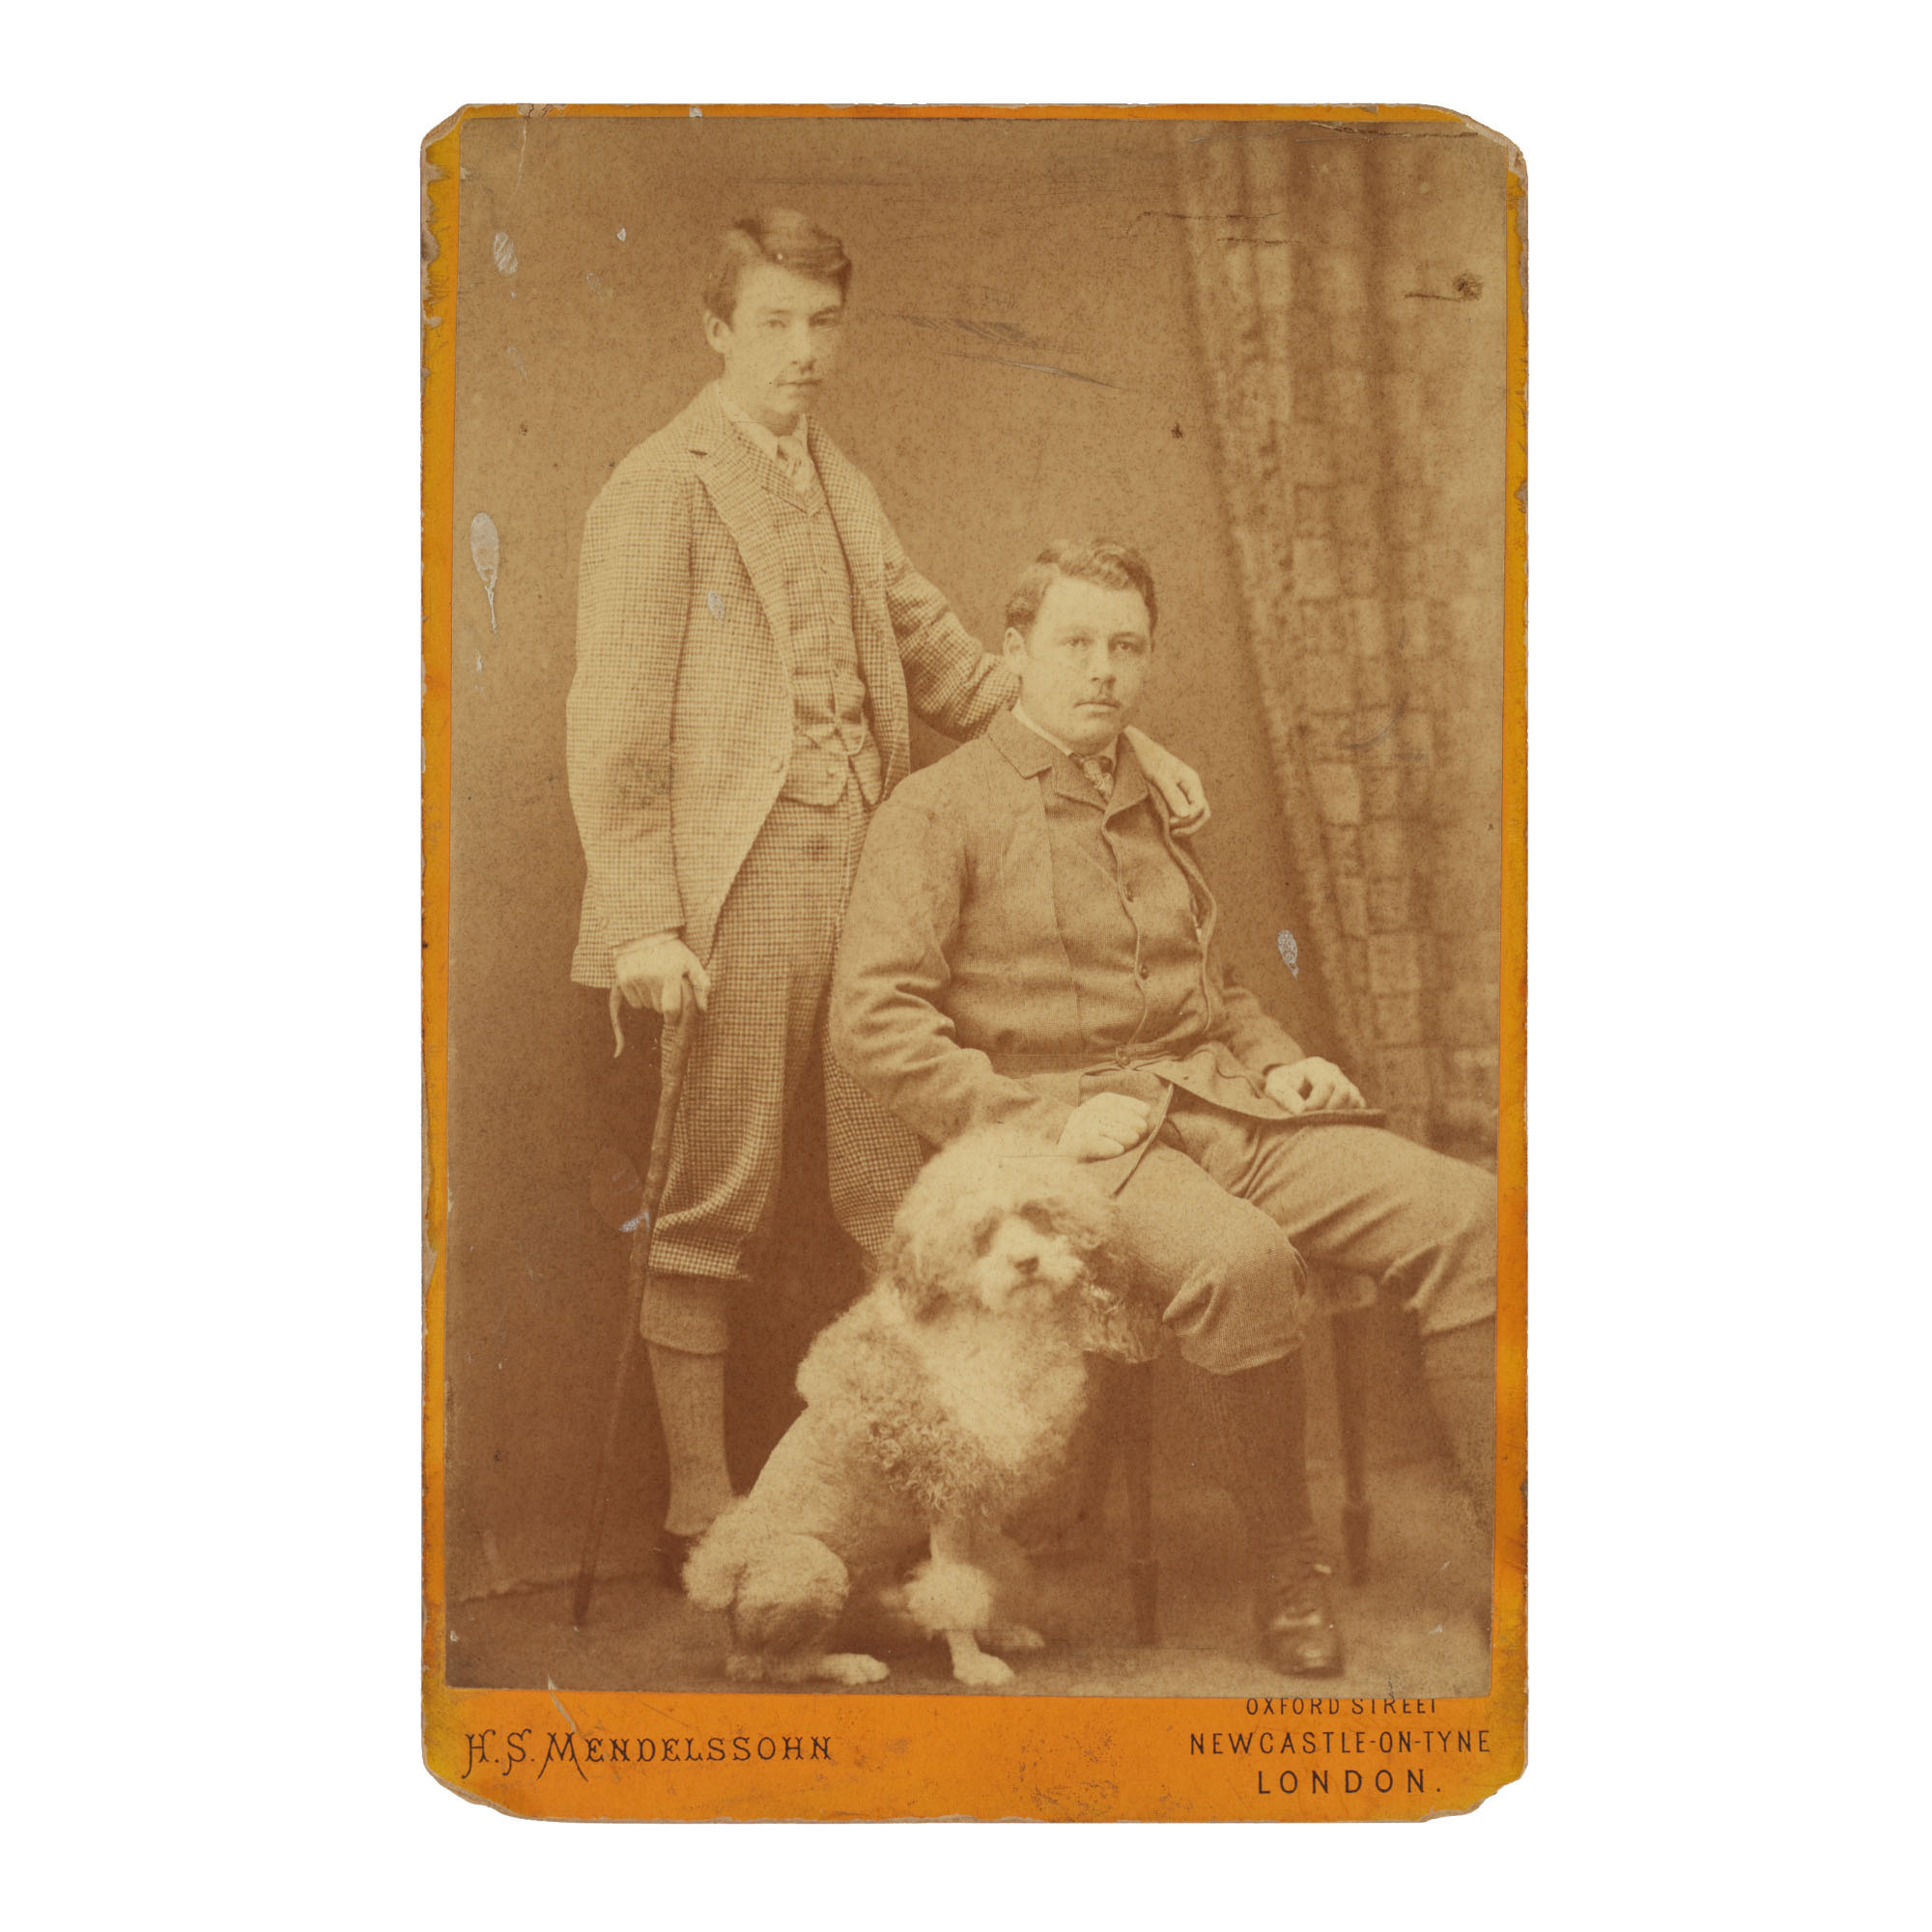 W. GRAHAM ROBERTSON   W. GRAHAM ROBERTSON, WALTER HILEY, AND THEIR DOG MOUTON